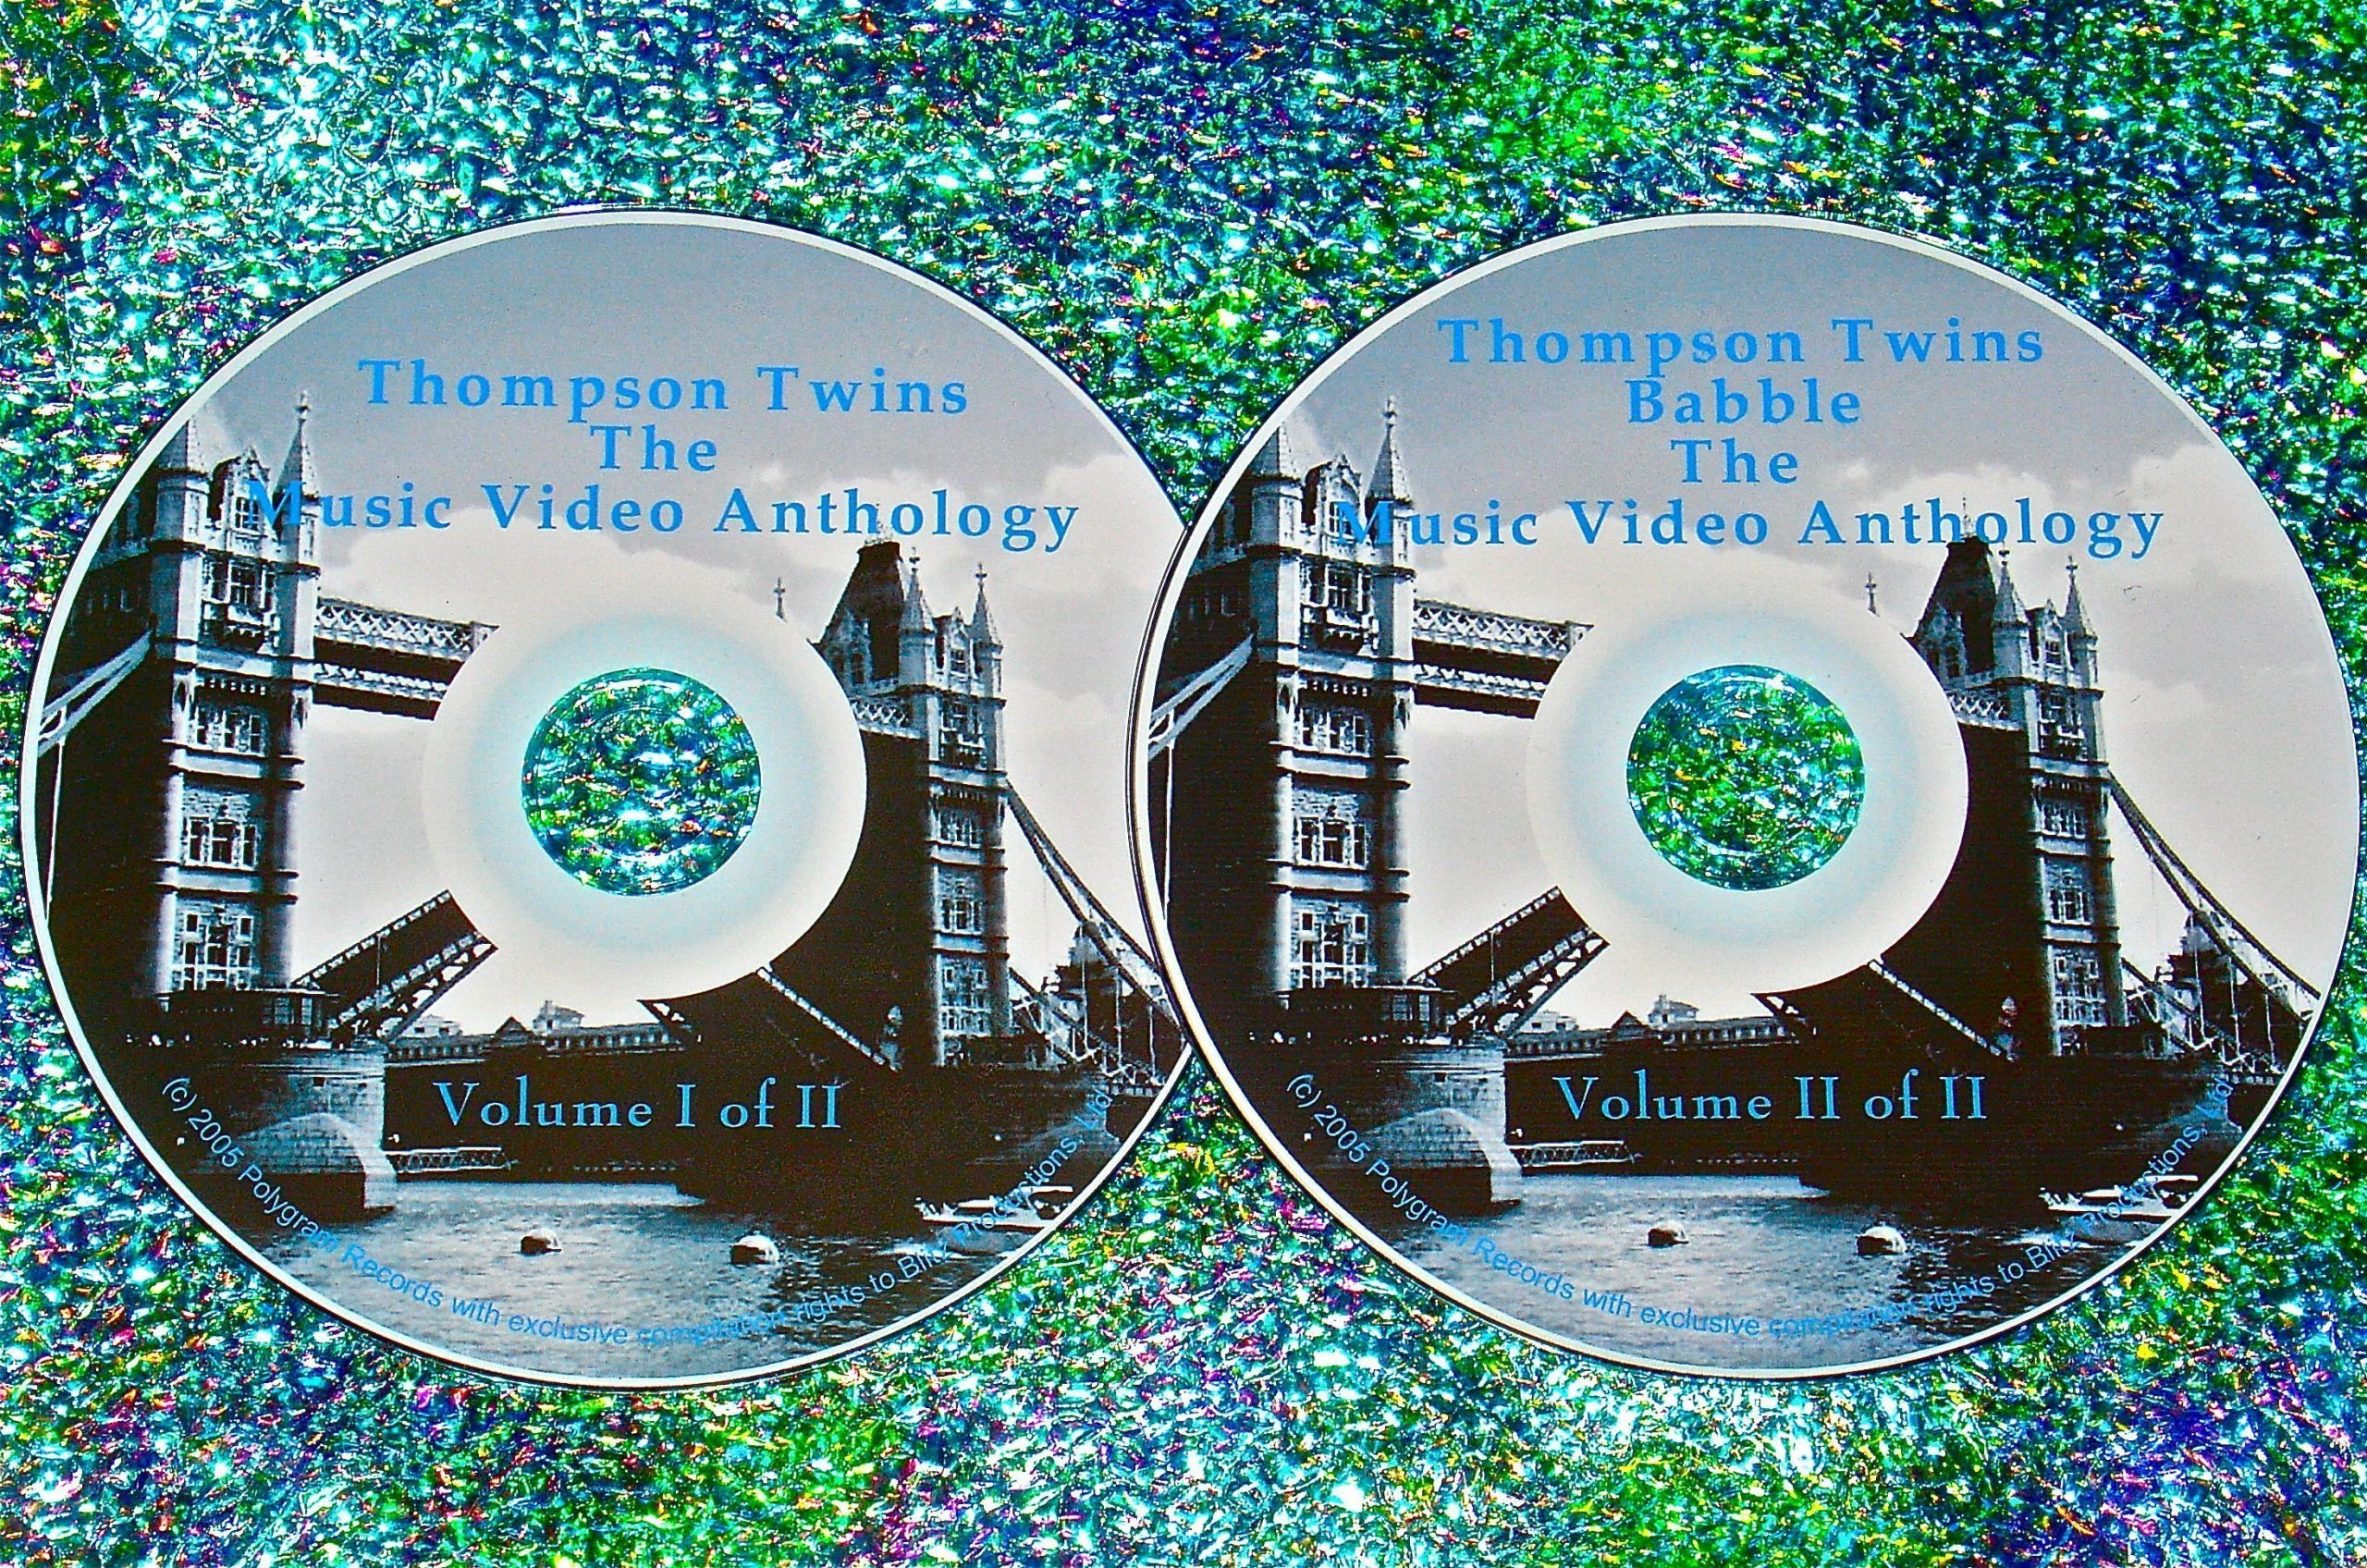 Thompson Twins & Babble: The Music Video Anthology & Live 1982-1993 2 DVD Set UPDATED!!!